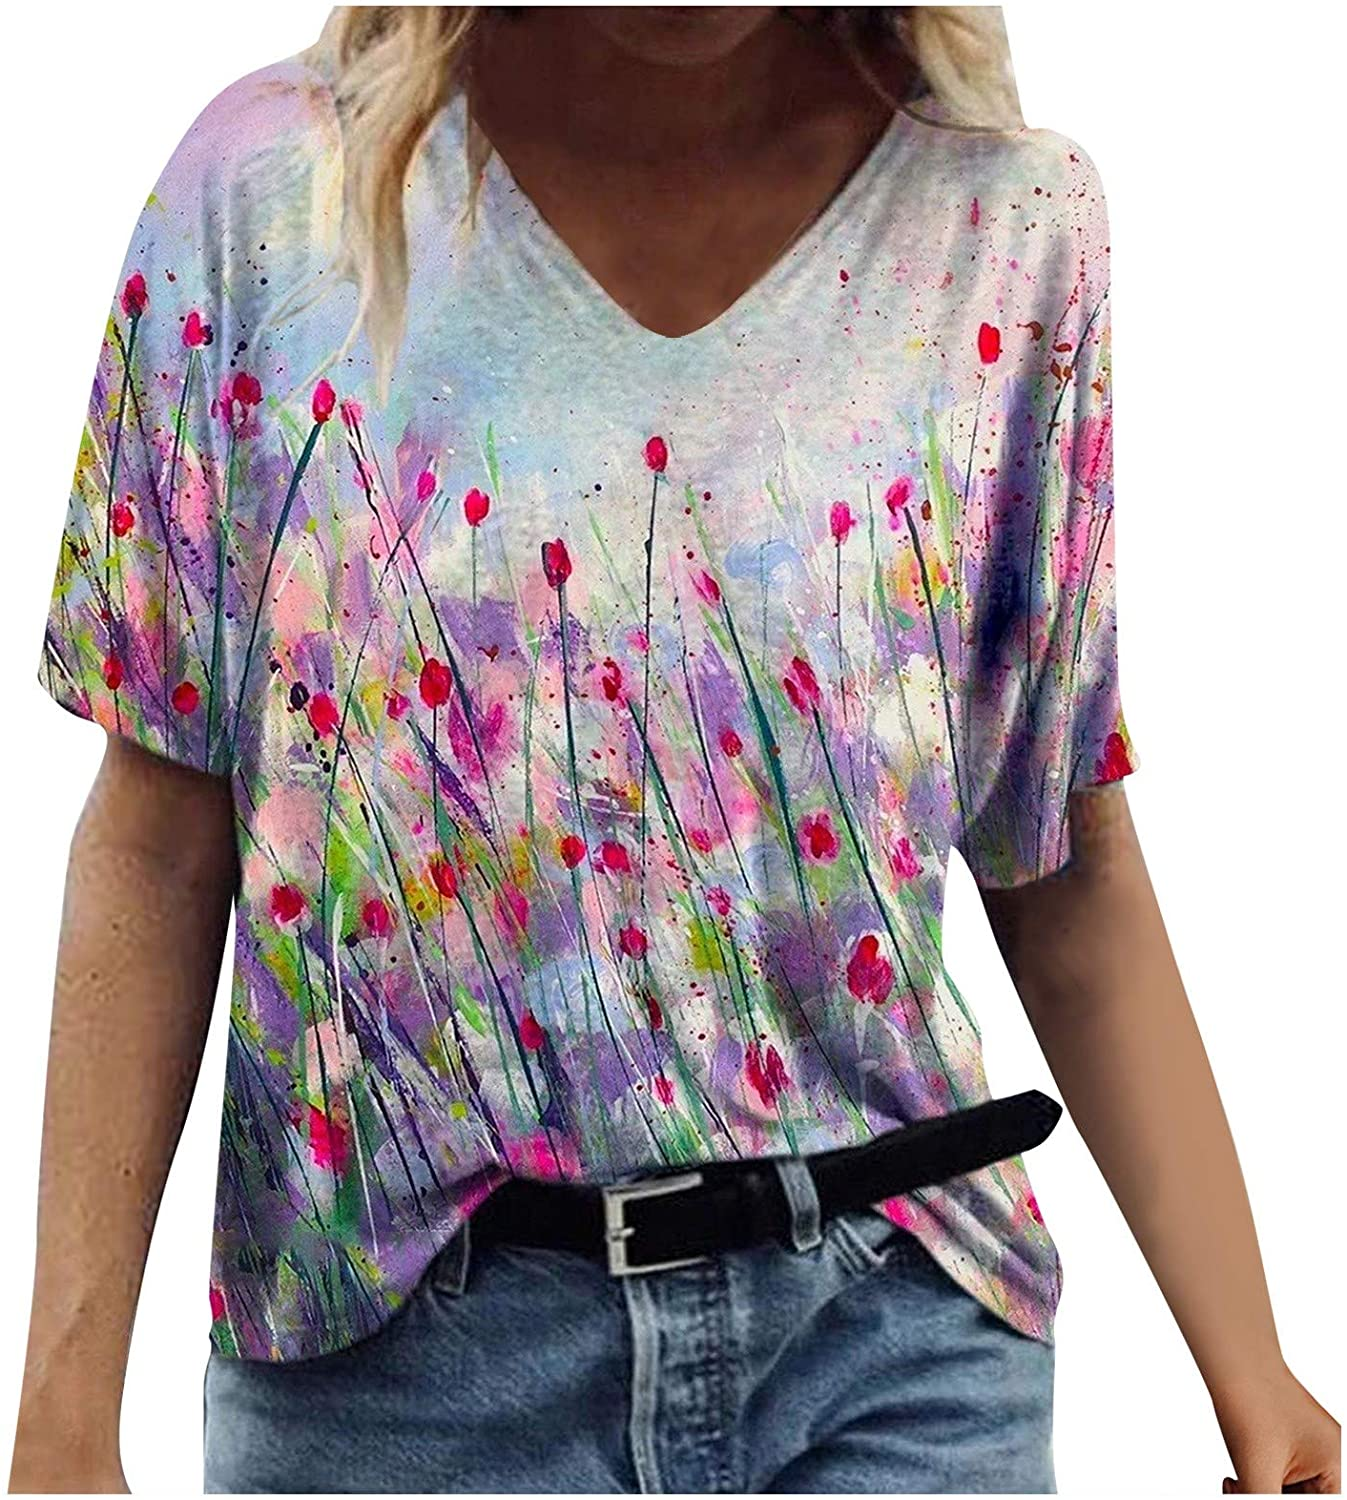 AODONG Summer Tops for Women,Valentines Days Shirts for Women Plaid Printing T Shirts Casual Love Heart Blouses Tops